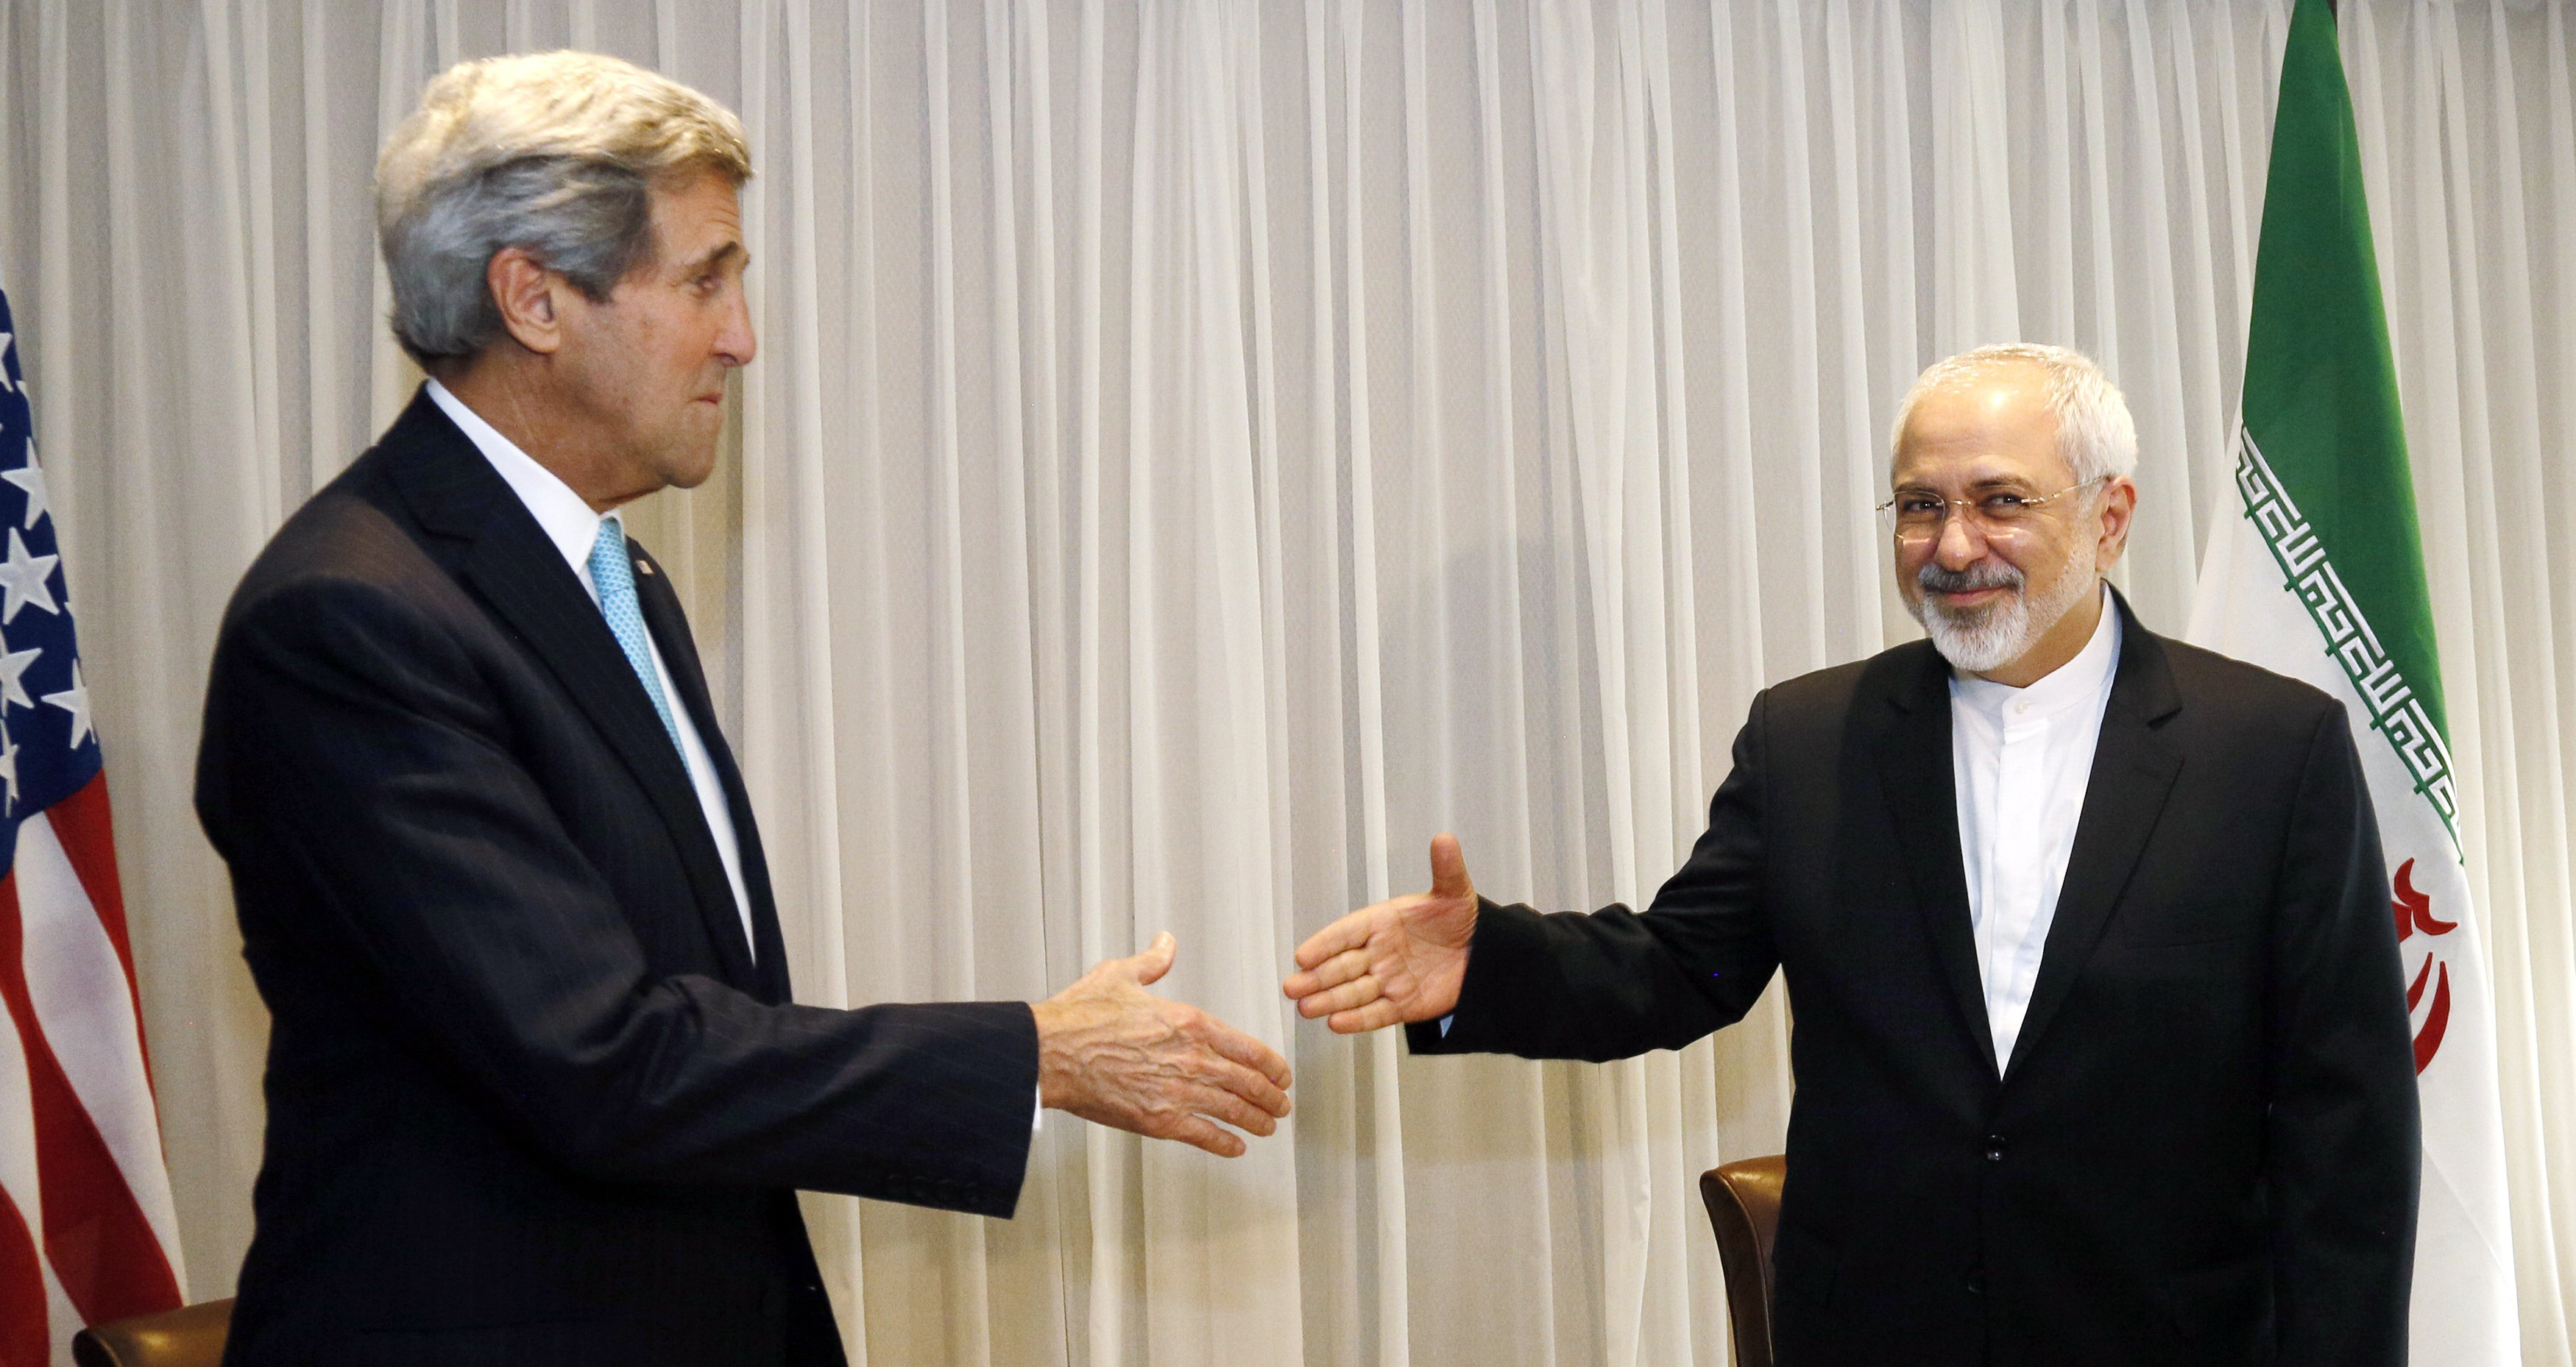 10 Things You Should Probably Know About the Iran Nuclear Deal